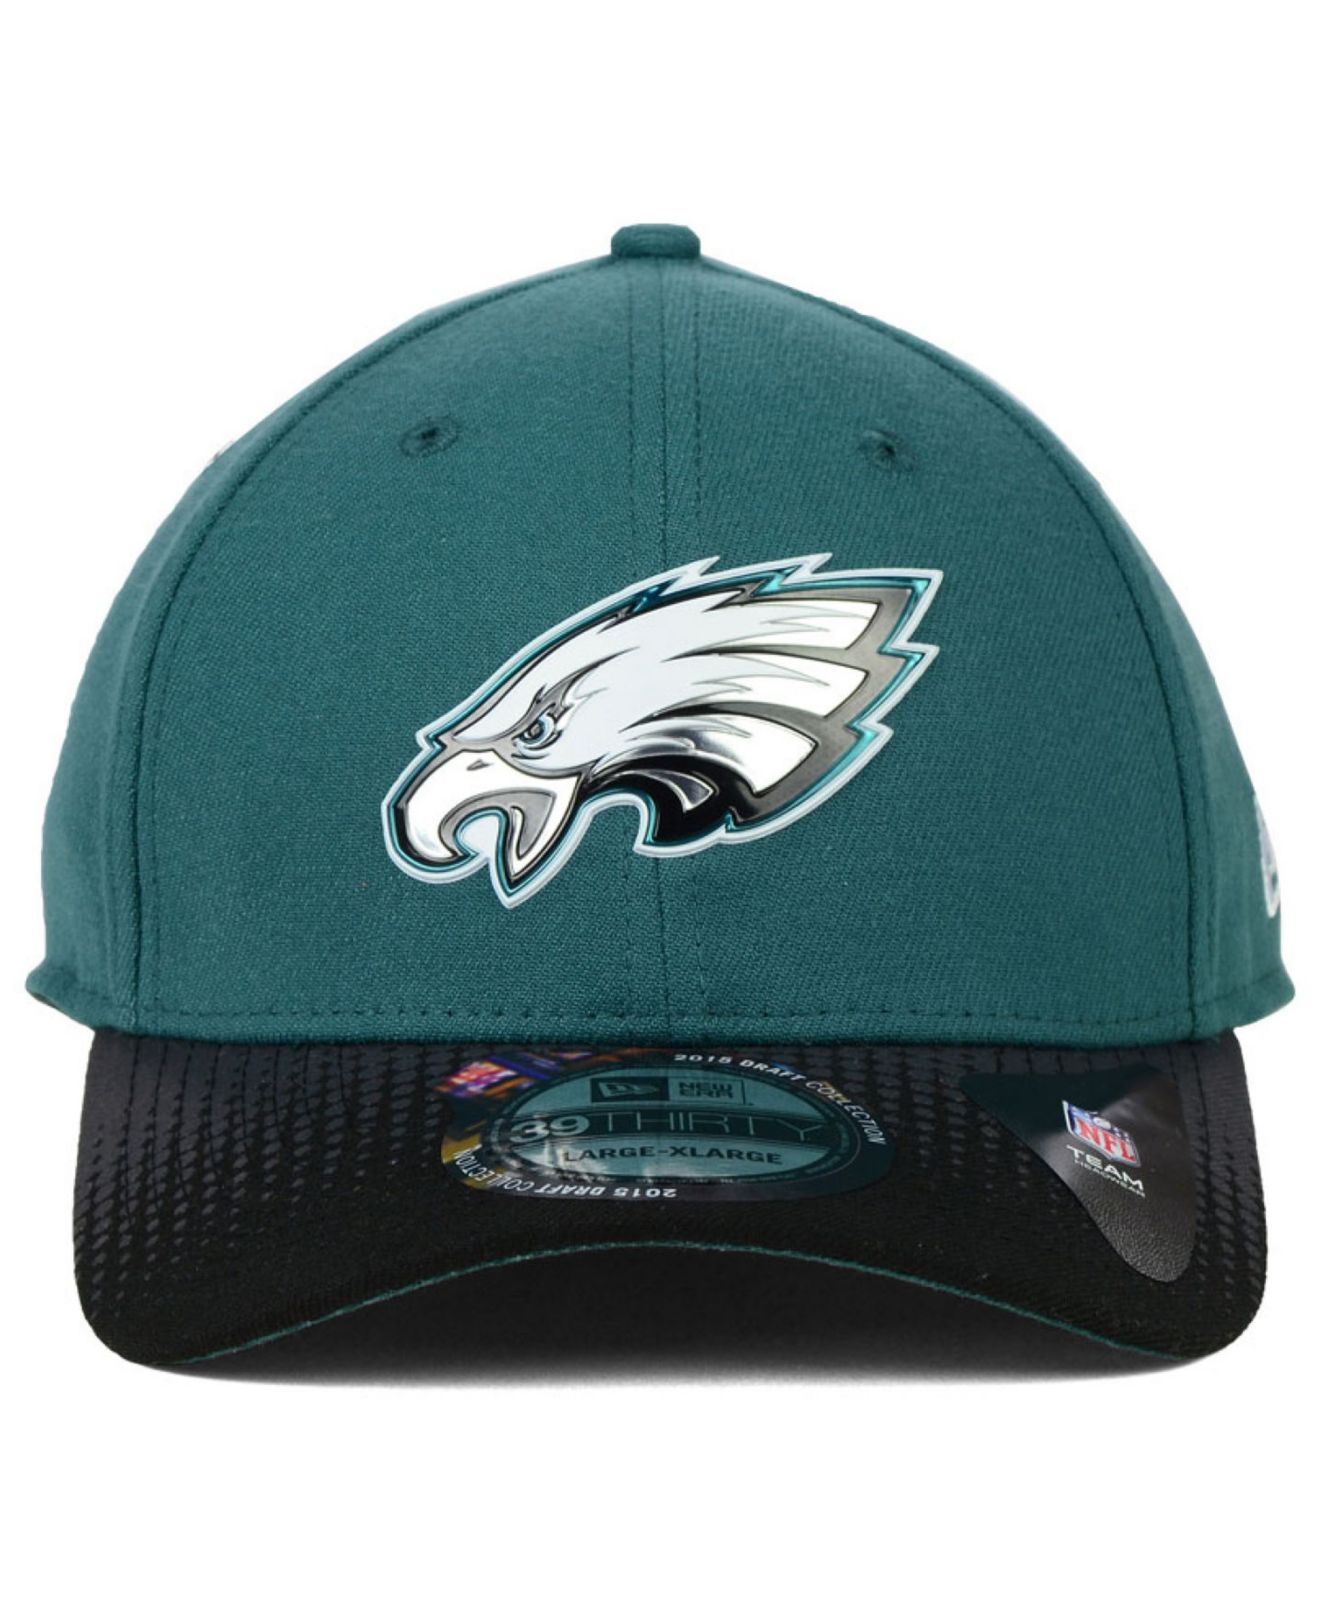 cab7bb7bafd Lyst - Ktz Philadelphia Eagles 2015 Nfl Draft 39Thirty Cap in Blue ...